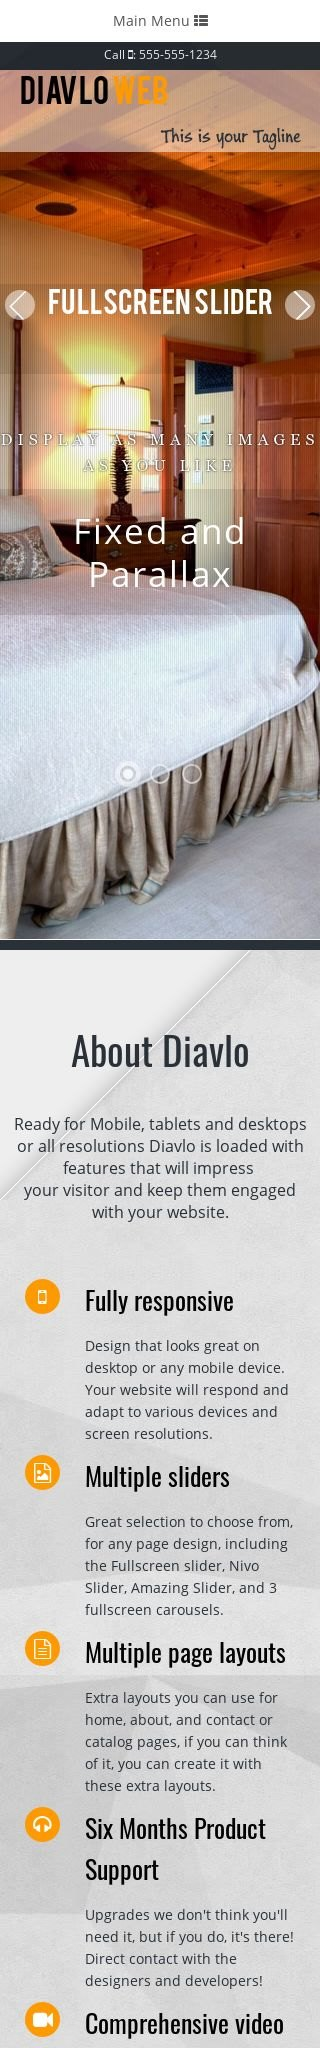 Mobile: Bed-and-breakfast Dreamweaver Template